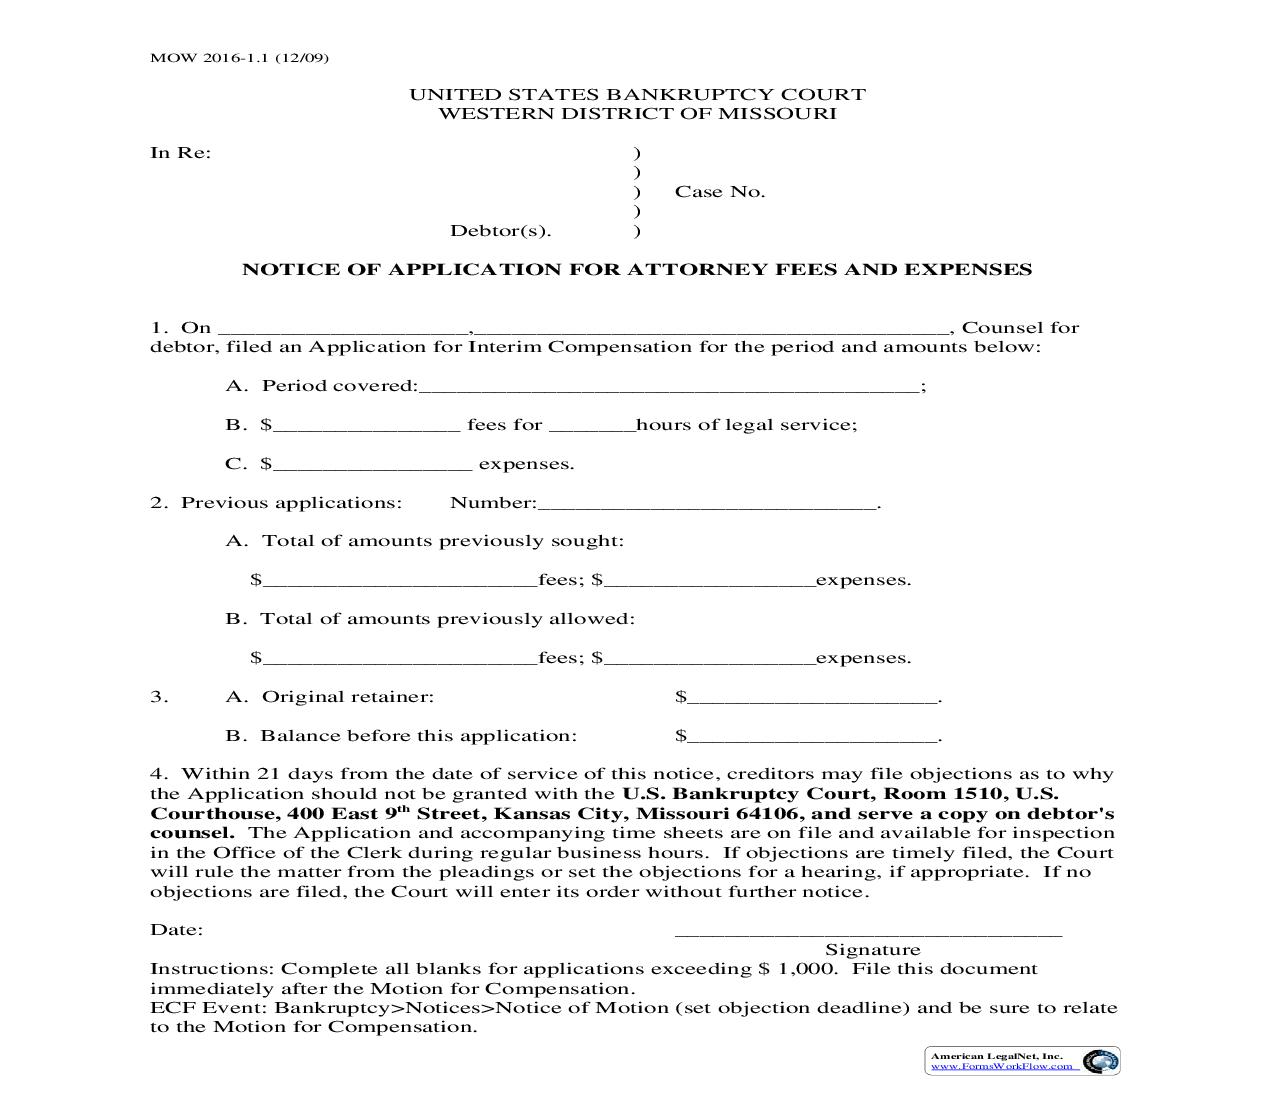 Notice Of Application For Attorney Fees And Expenses {MOW 2016-1.1} | Pdf Fpdf Doc Docx | Missouri